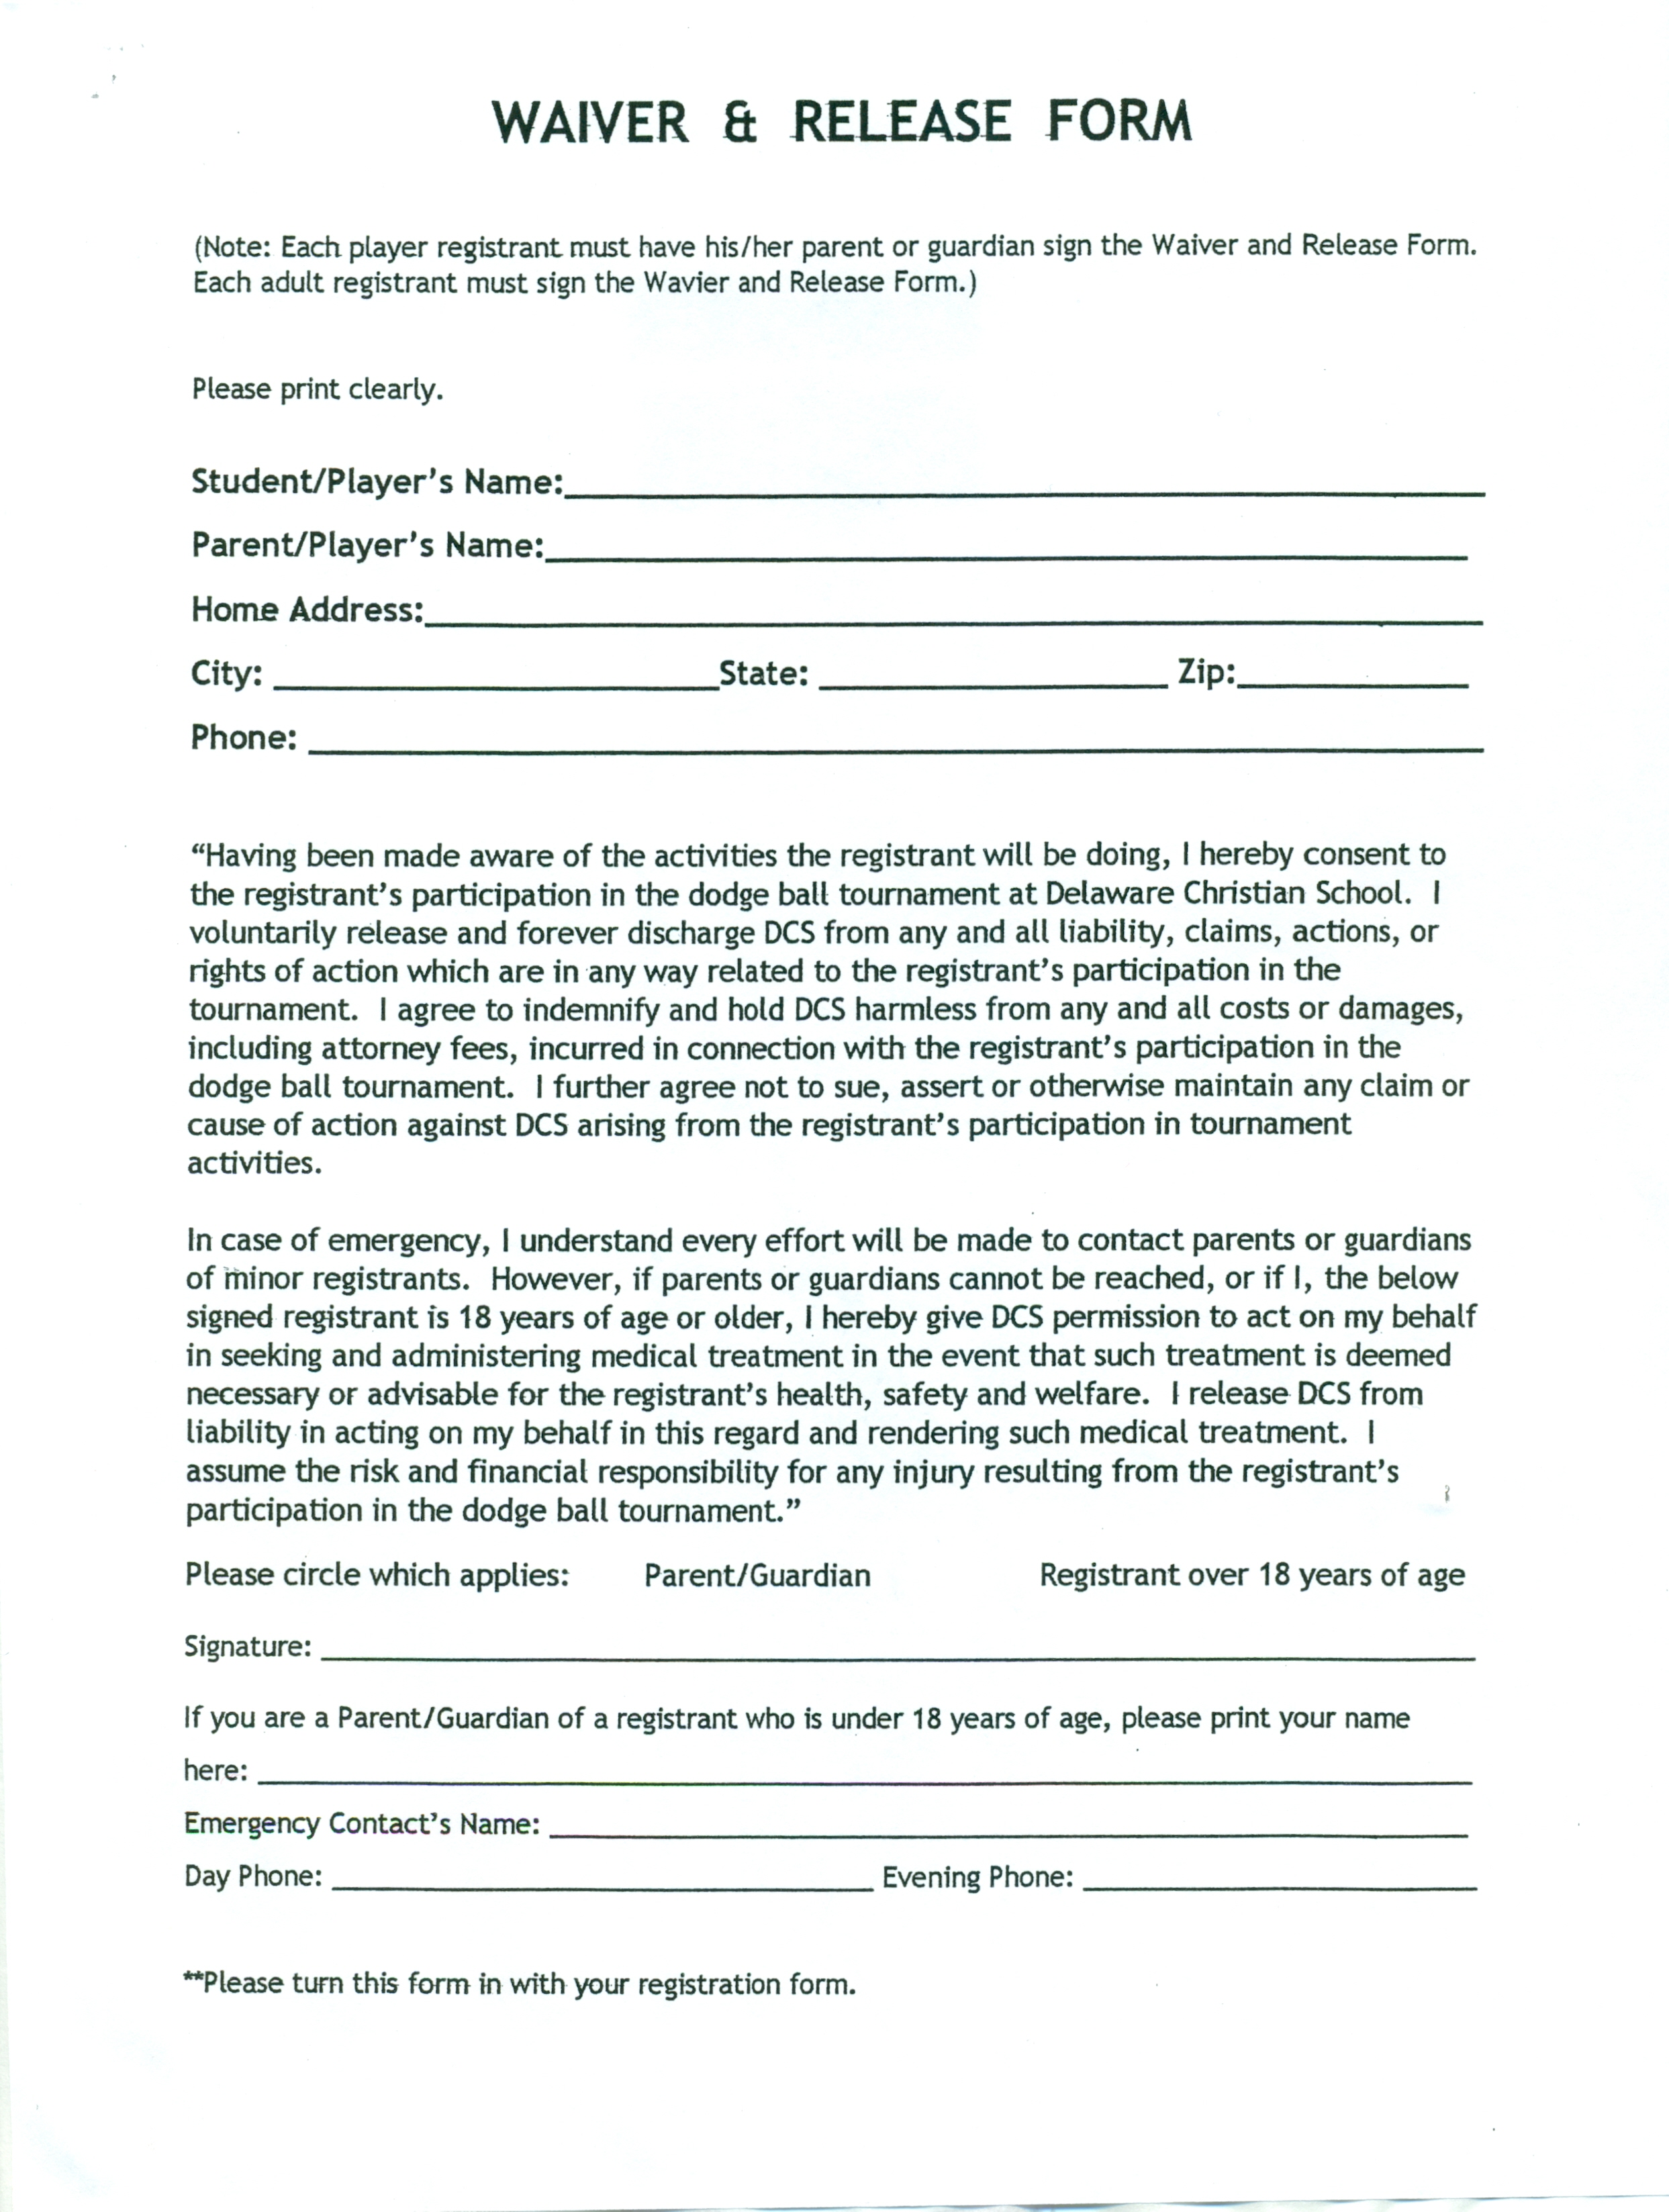 release from liability form template - release waiver template free printable documents